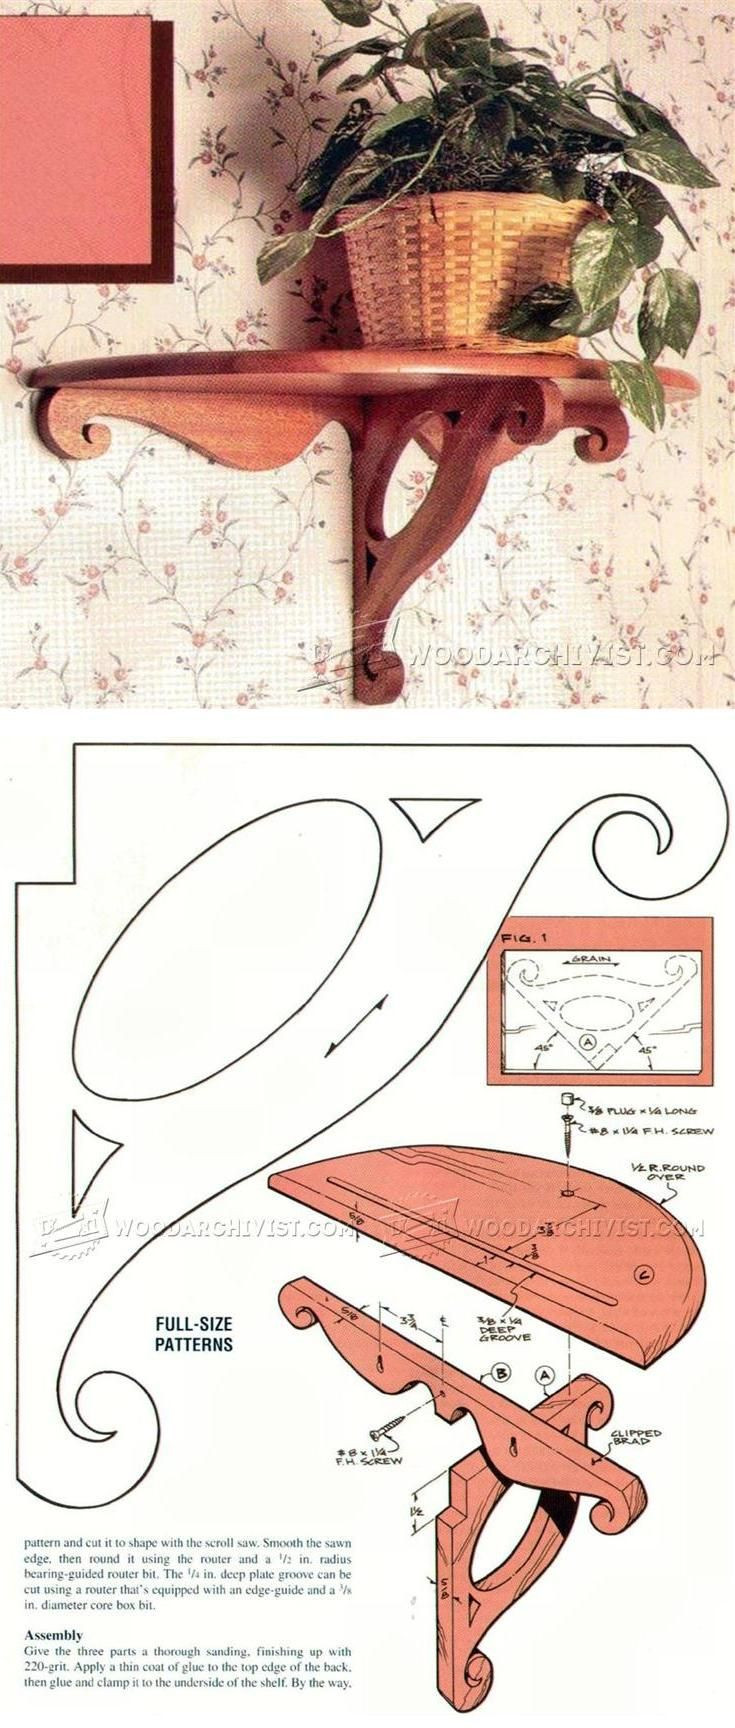 Best ideas about DIY Project Plans . Save or Pin Best 25 Woodworking Plans ideas on Pinterest Now.